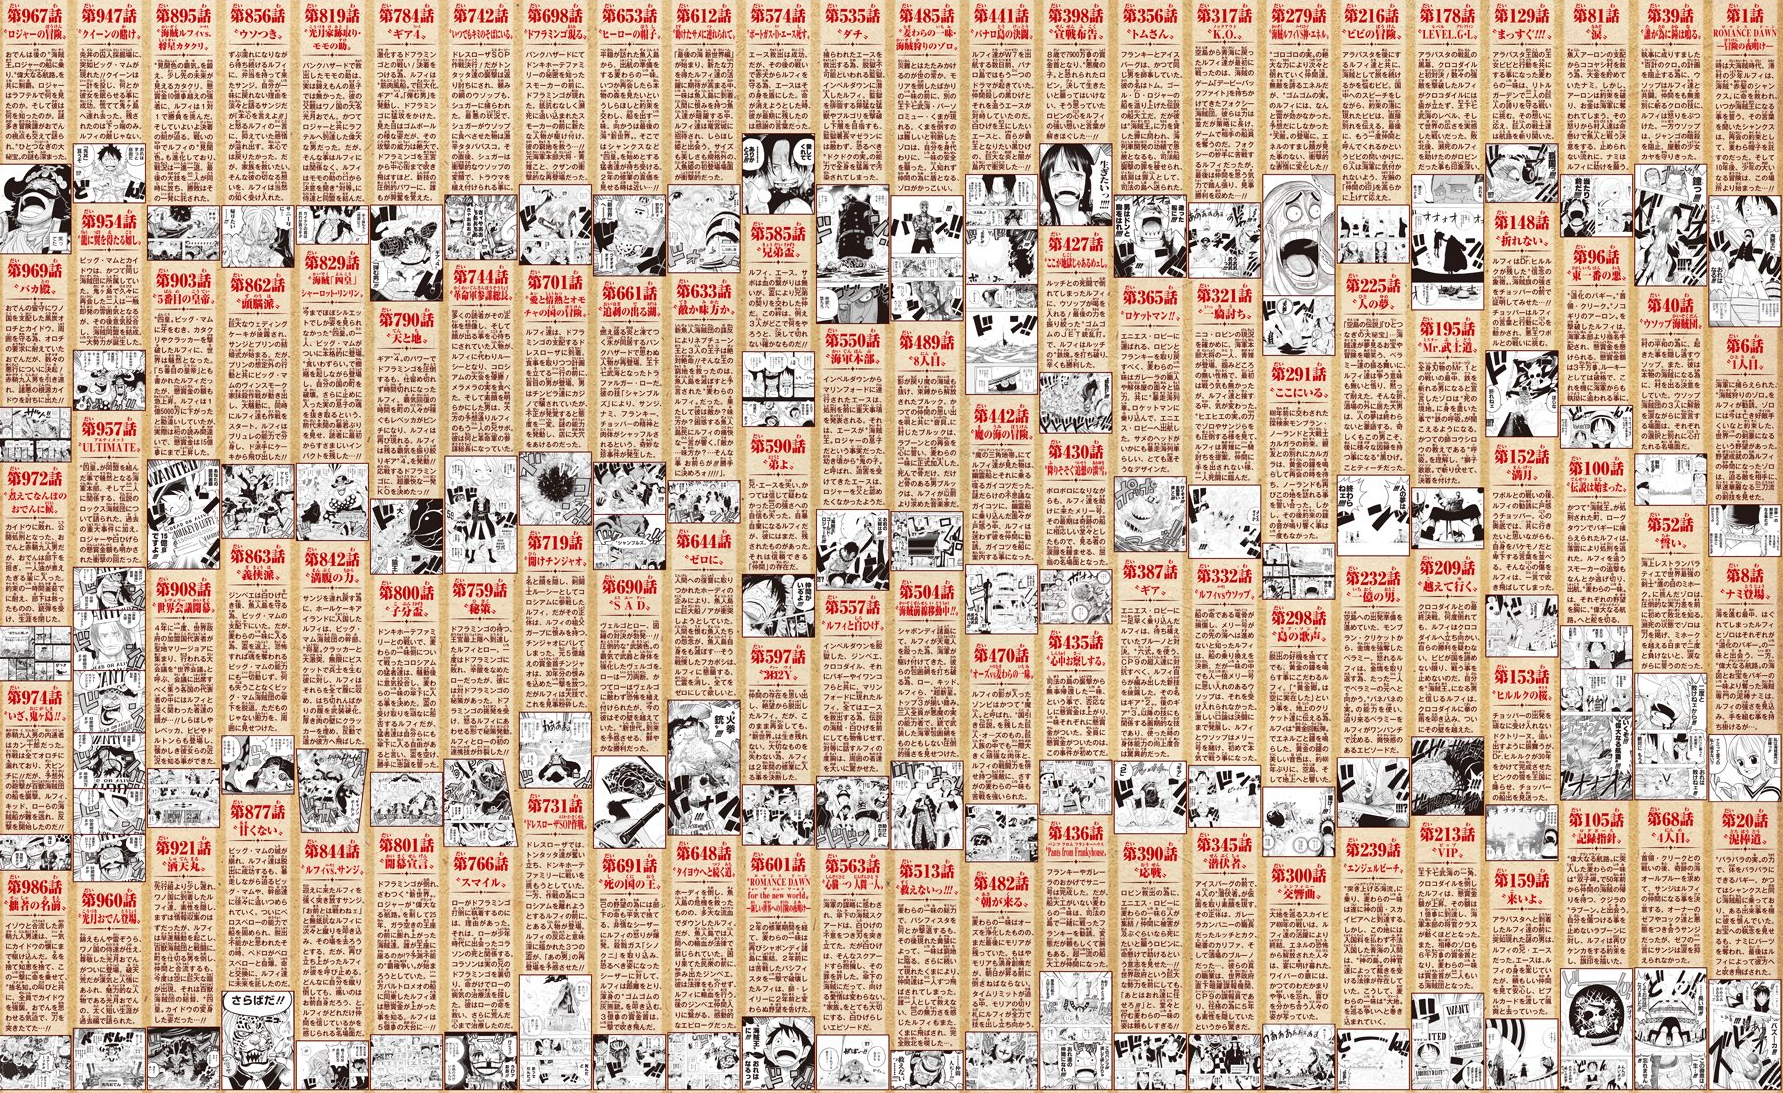 One piece chart MIRACLE